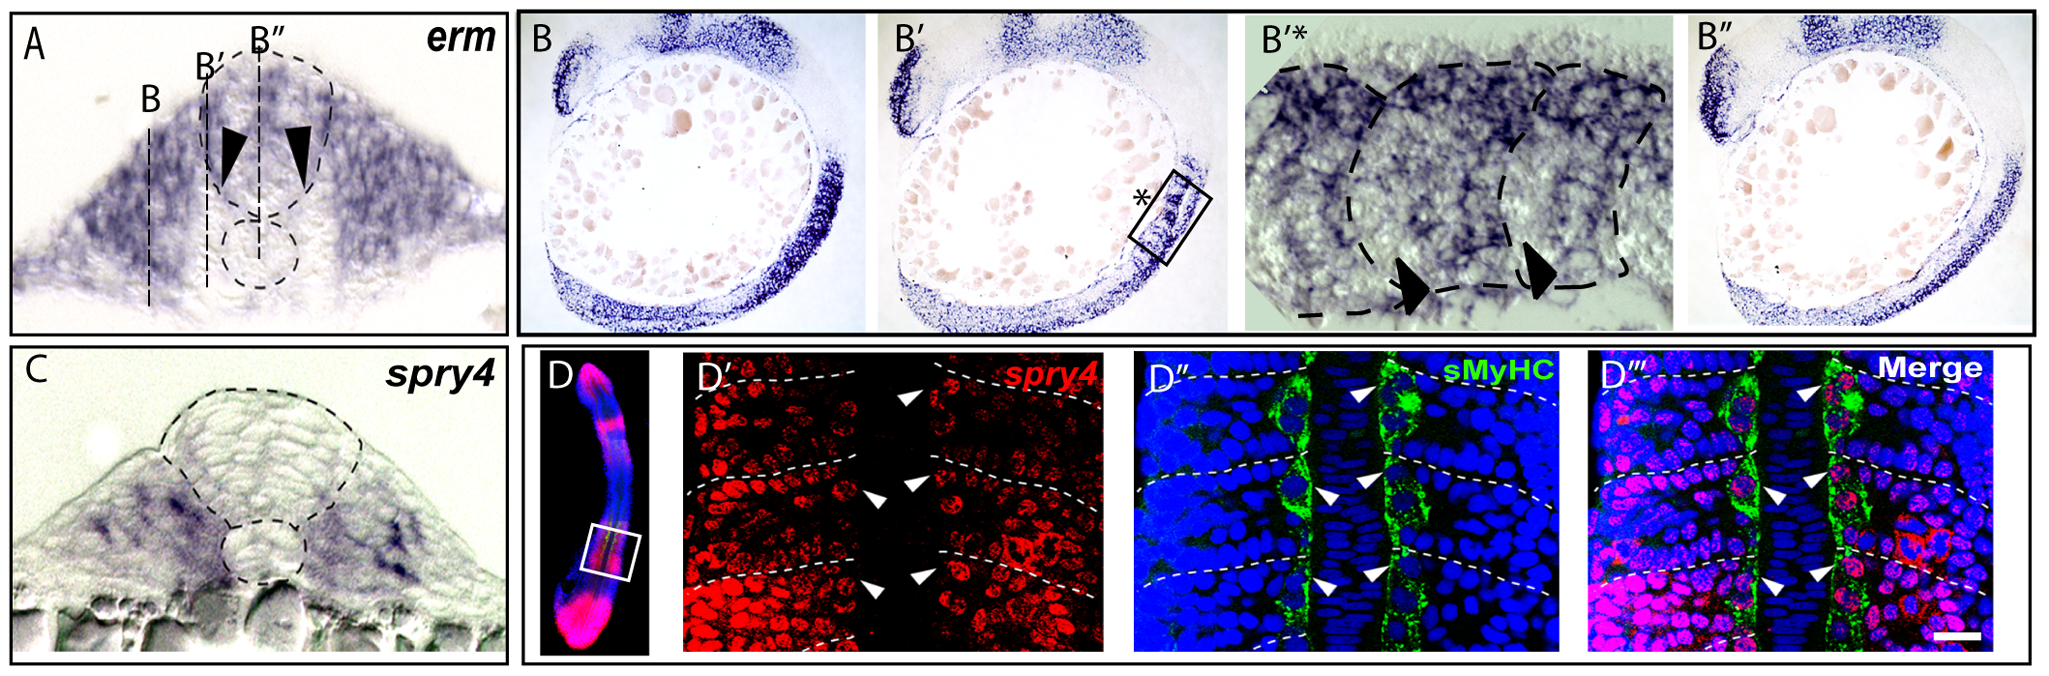 FGF signaling is down regulated in muscle pioneer precursor domain.